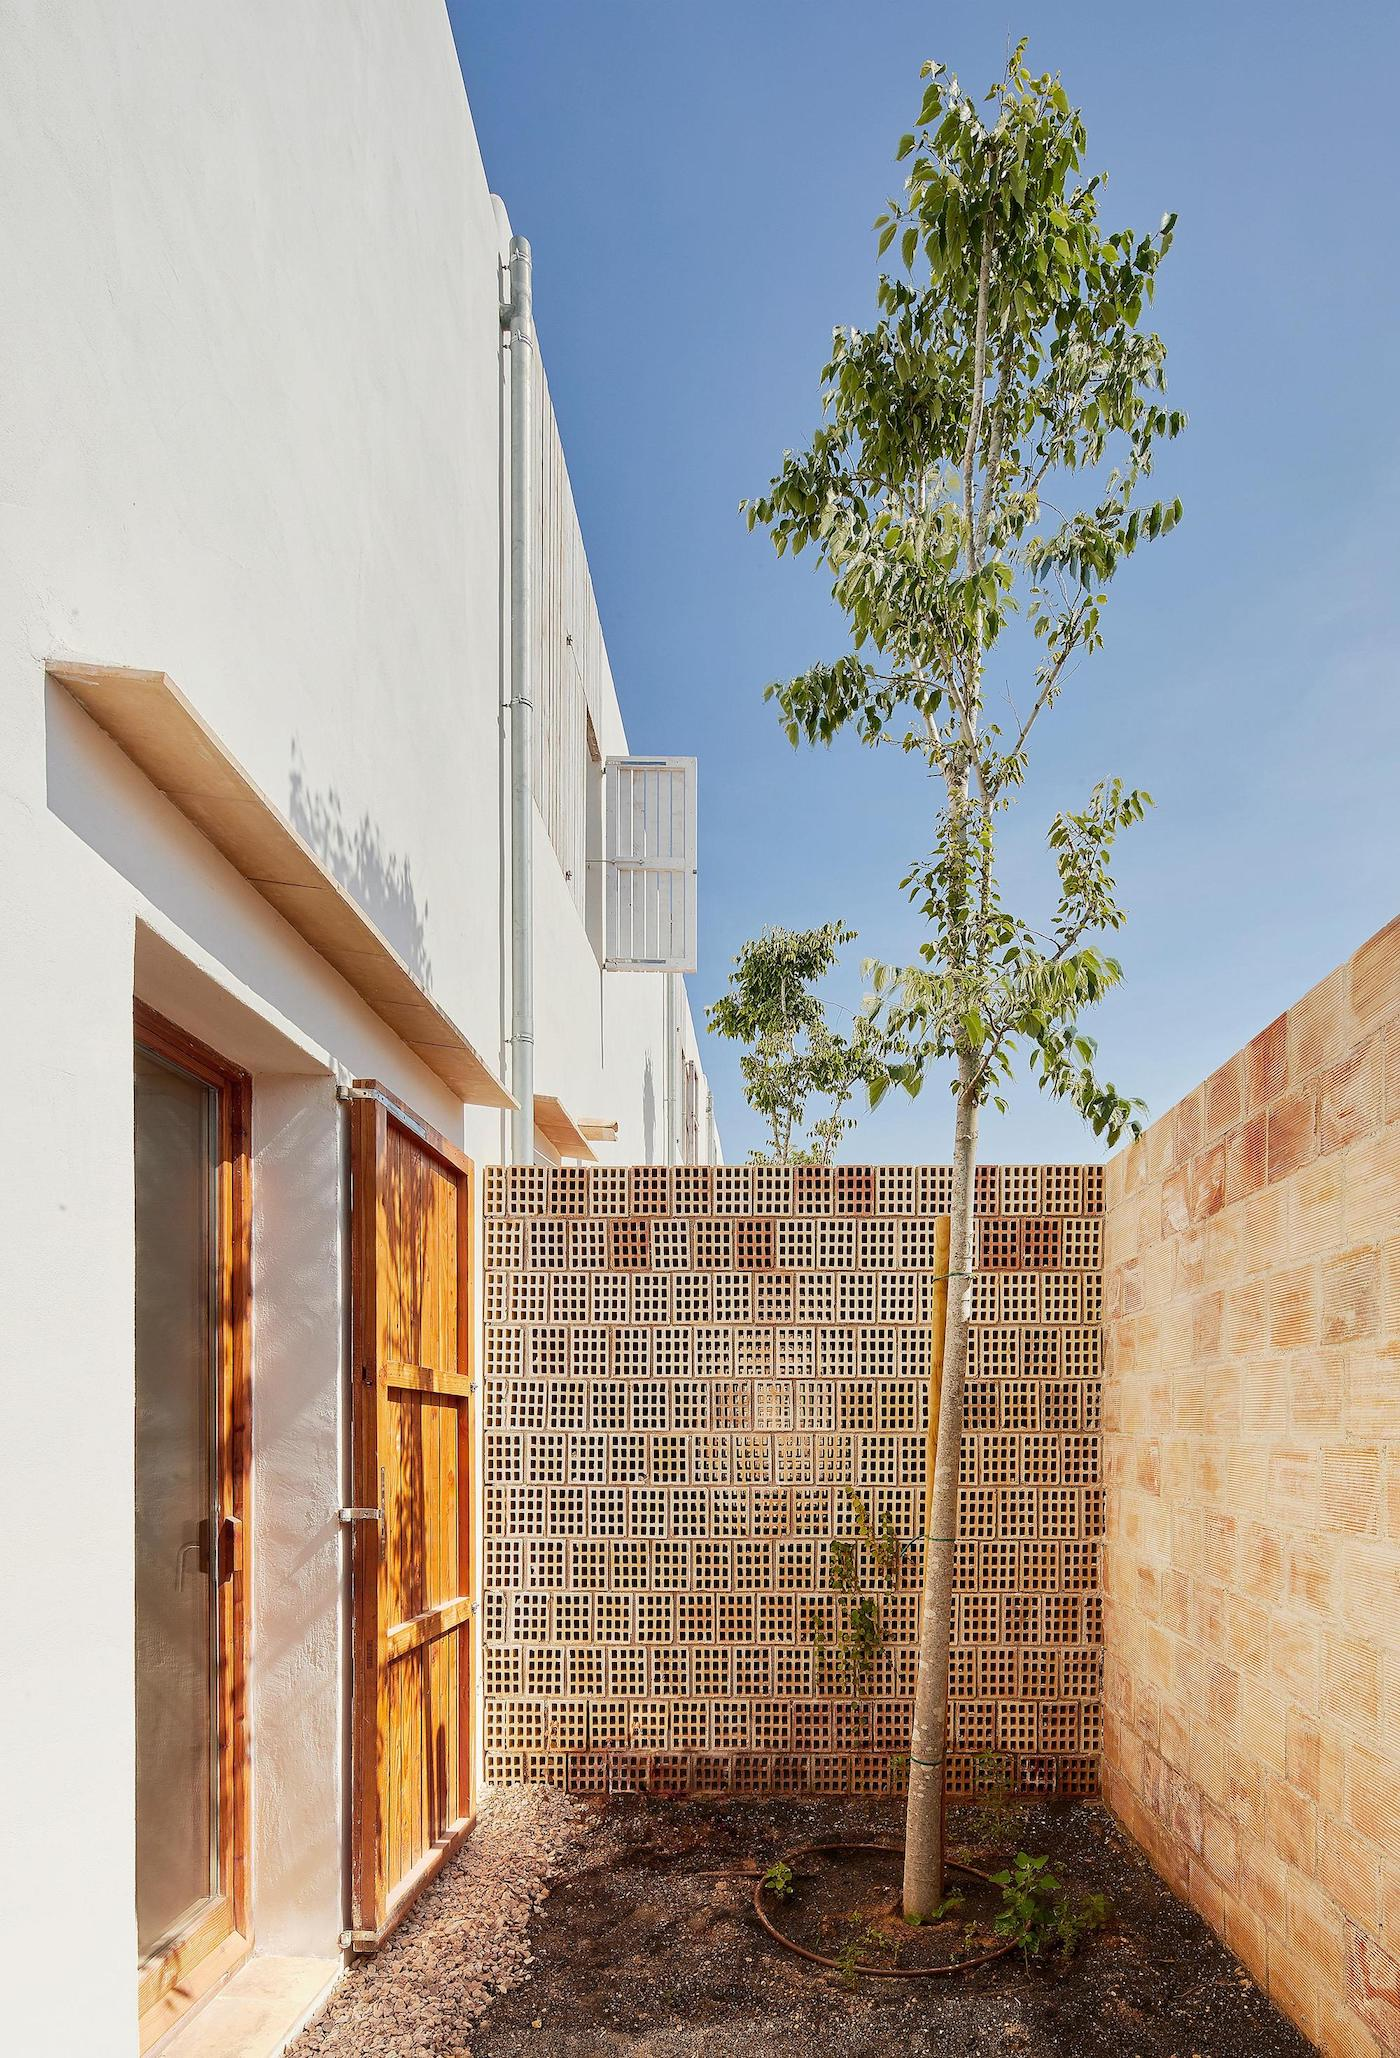 Breeze block courtyard with tree and recycled timber doors